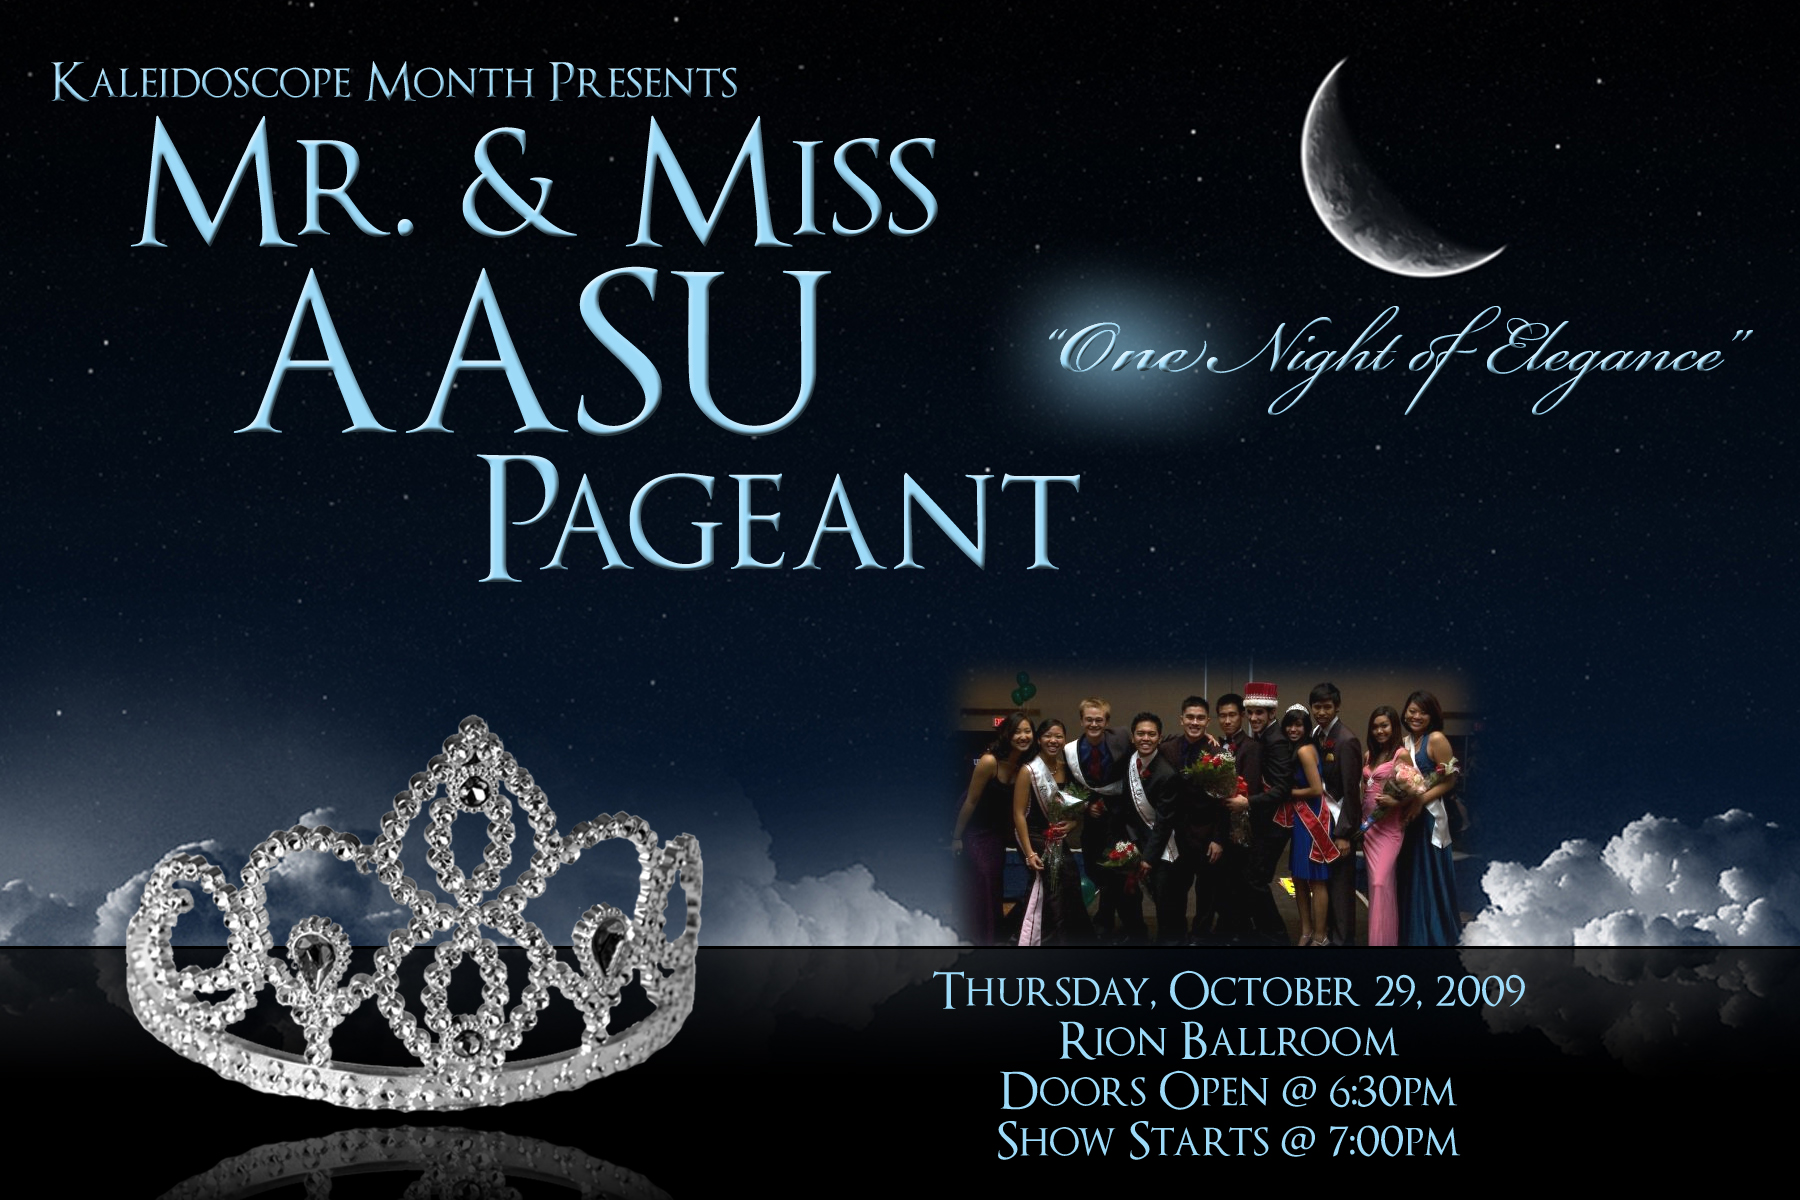 Mr and ms pageant background - photo#1